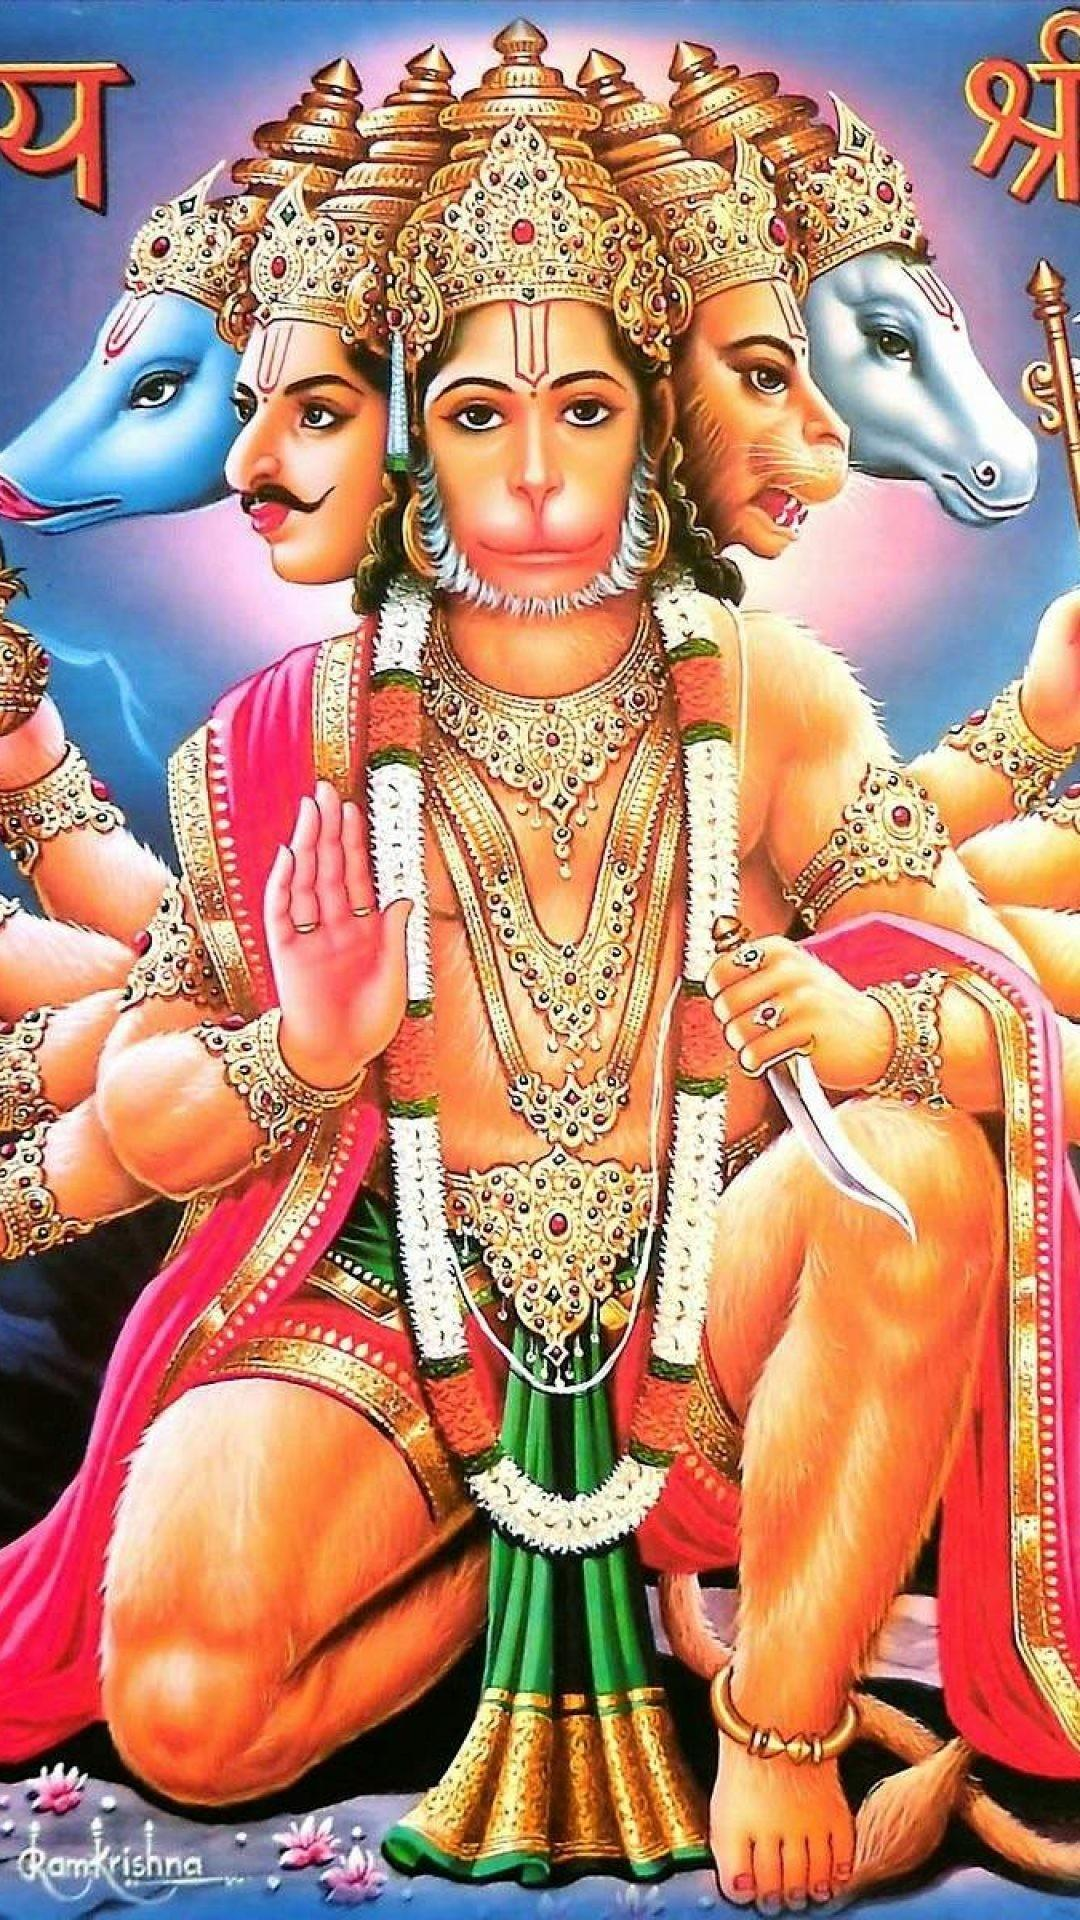 Jai Hanuman Hd Wallpapers For Android Apk Download